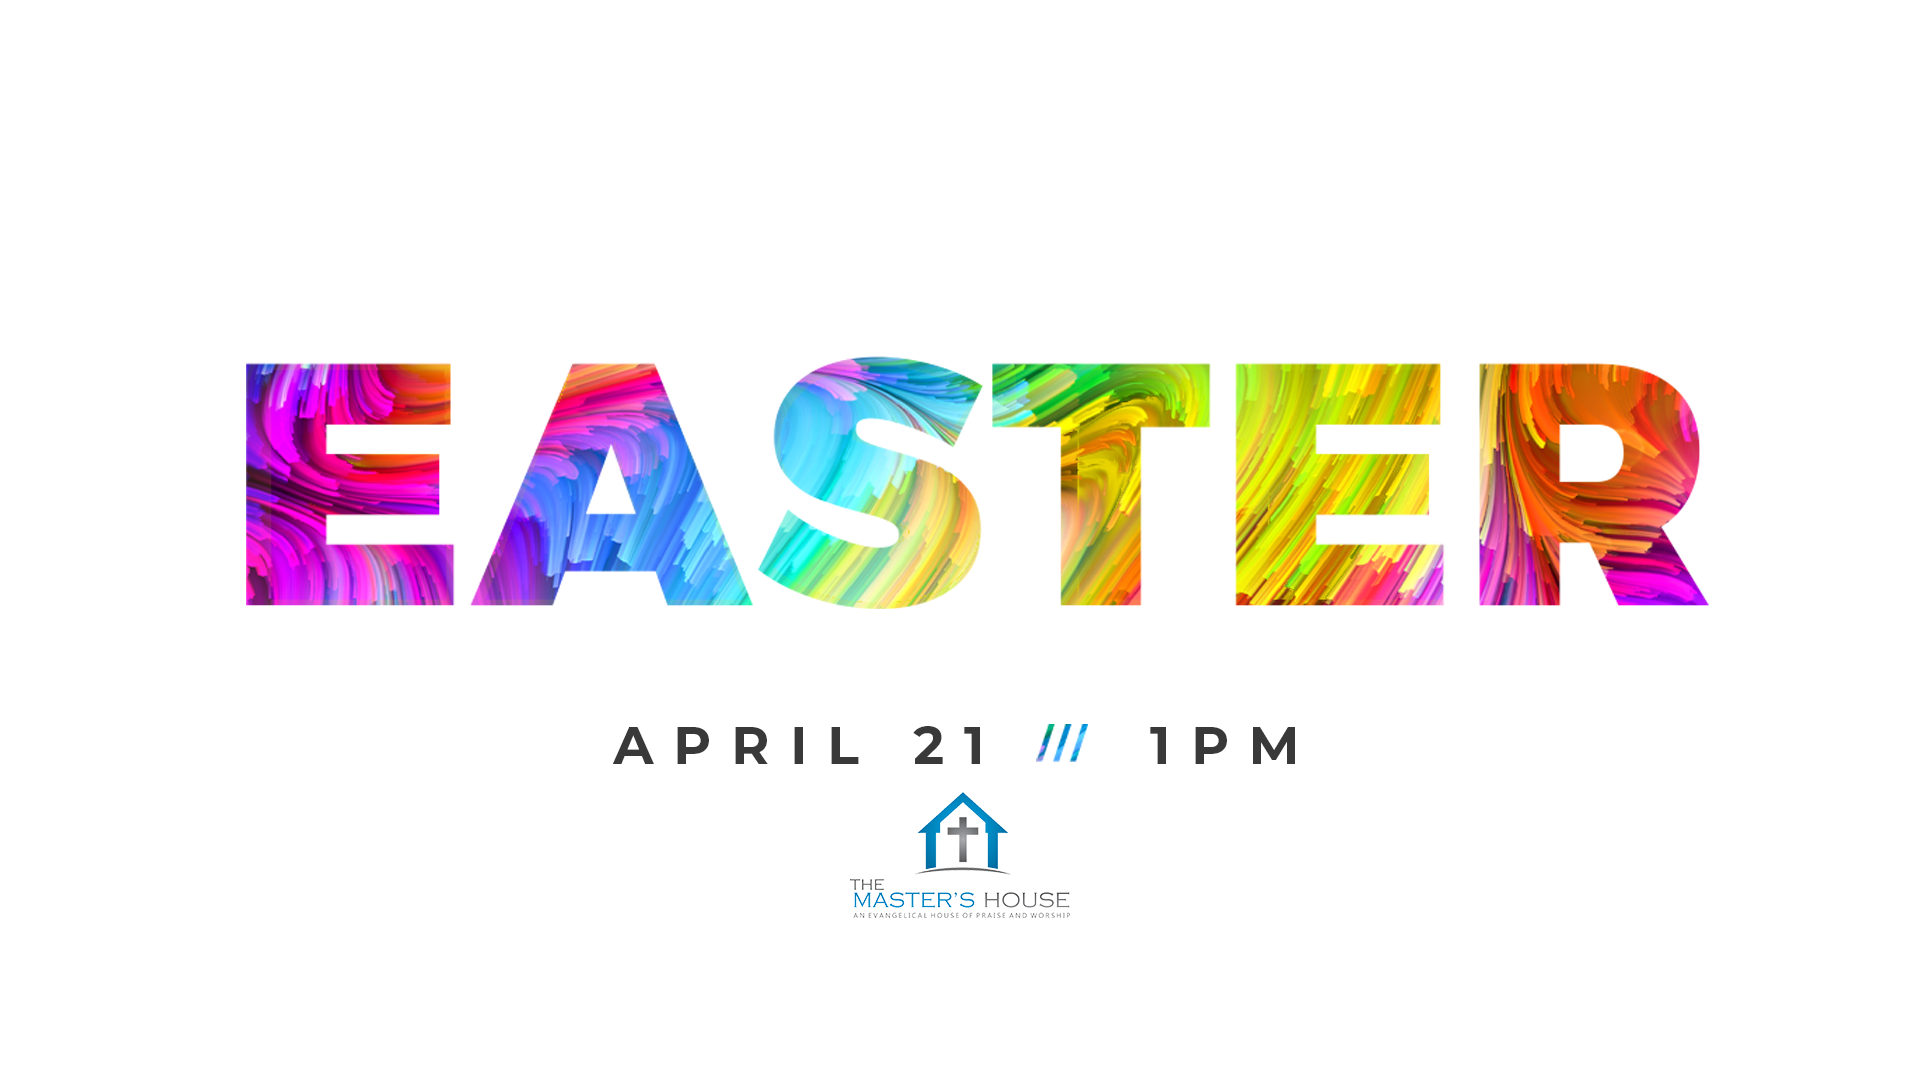 Easter at The Master's House